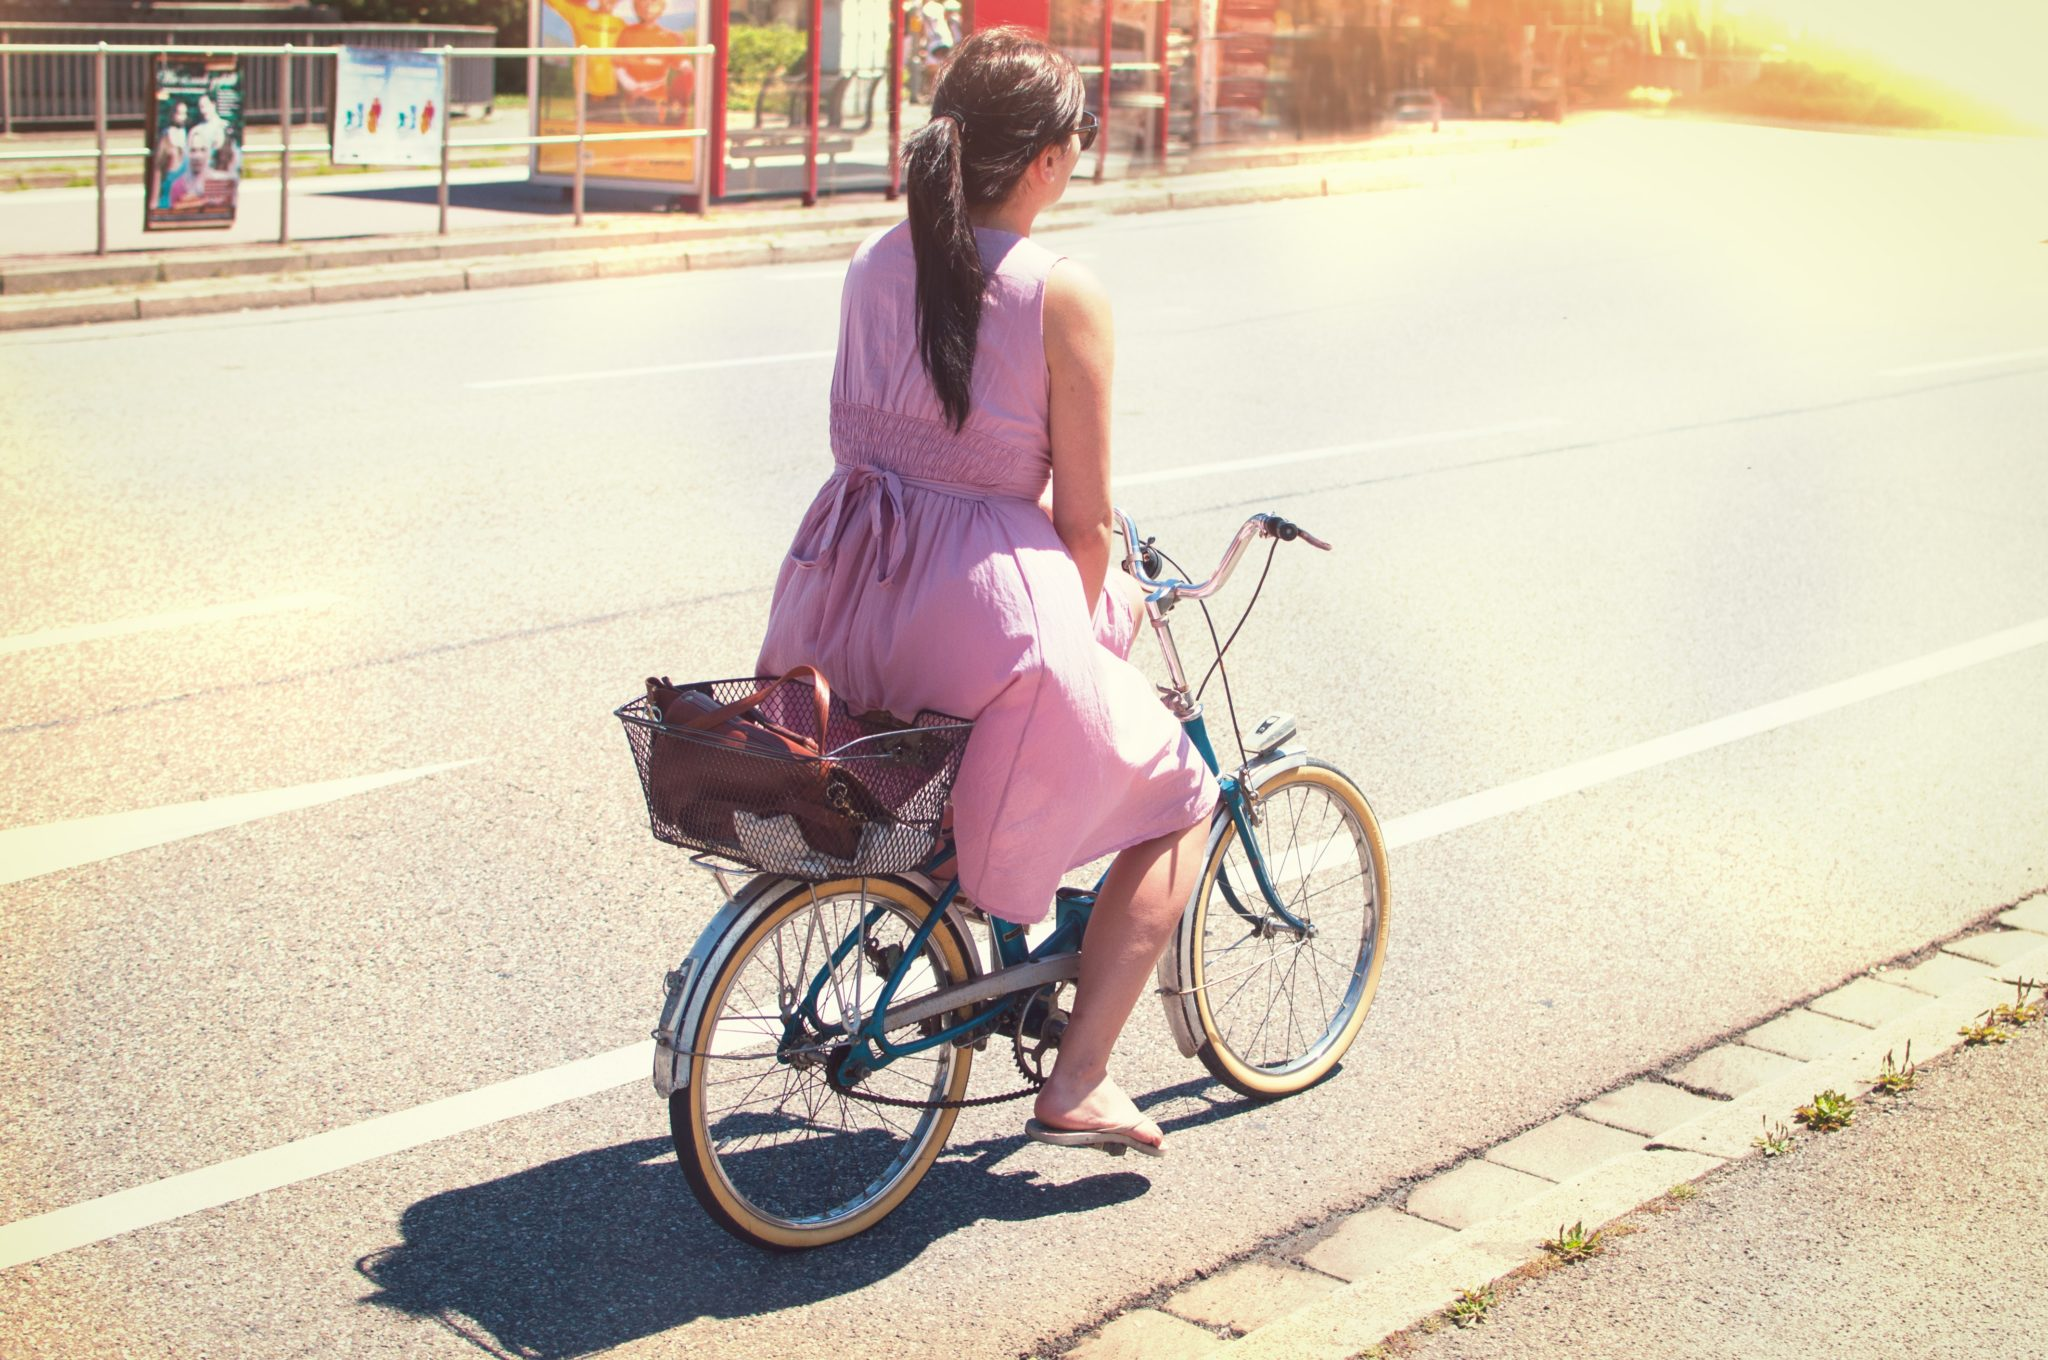 Bicycle Female Person 101647